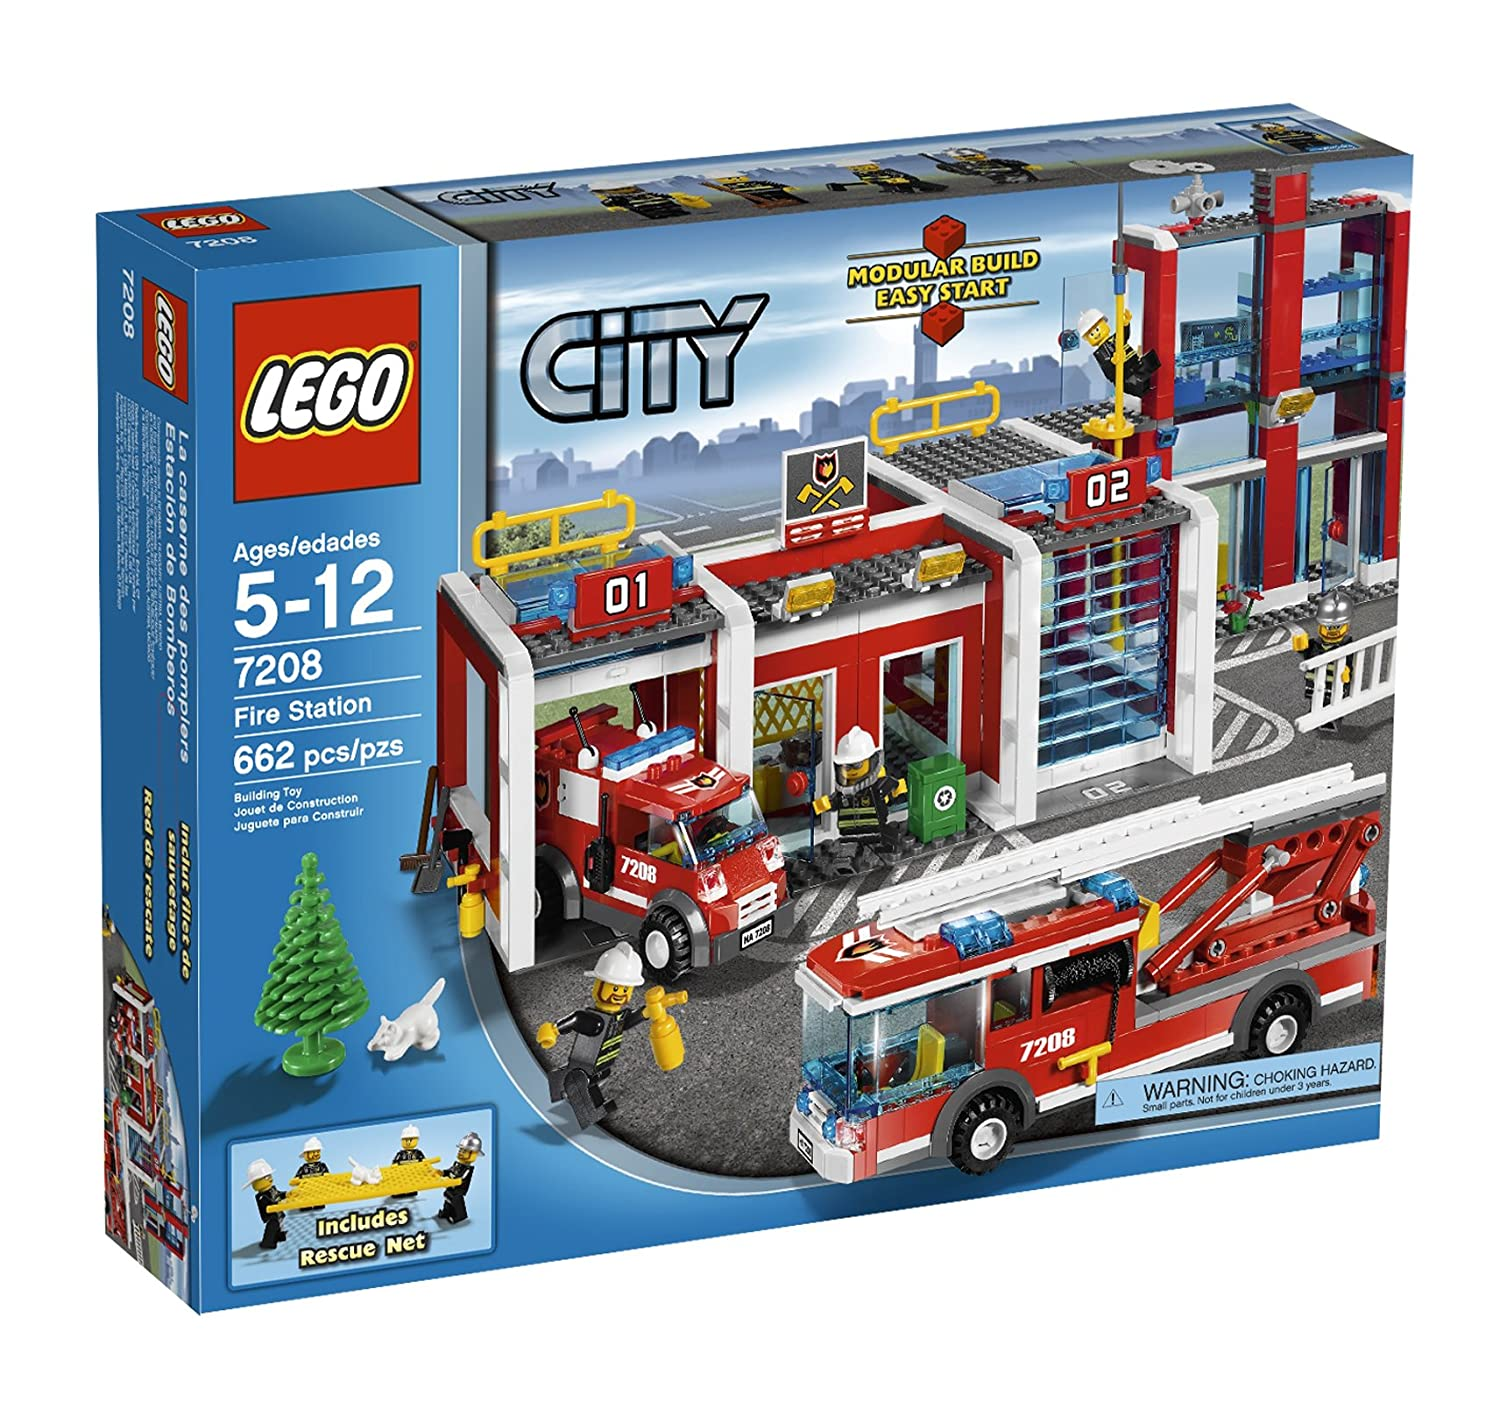 Top 9 Best LEGO Fire Station Sets Reviews in 2020 7